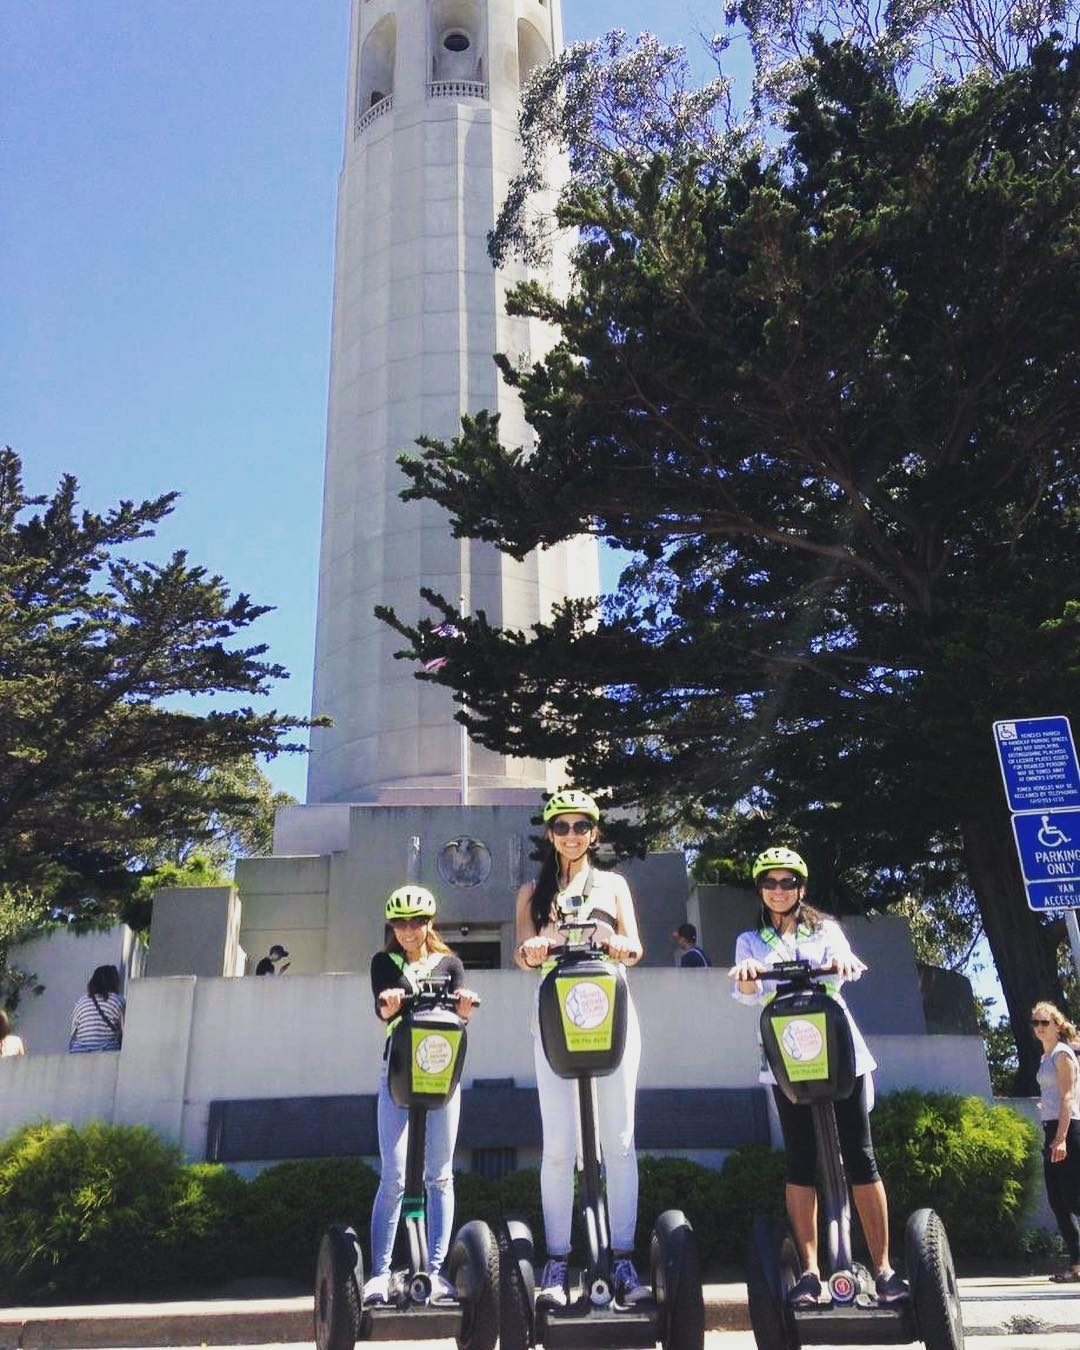 Segway the hills in San Francisco!  San Francisco Electric Tour Company and Fishermans Wharf and the SF waterfront are today's segway tour of the day! Great views from on top of and  @sfsegway ・・・ Good morning  The sun is out and it's a beautiful day in @fishermanswharf . Join us for a Segway tour of the waterfront, Little Italy and Fisherman's Wharf. For you folks with a tight schedule we have our new 1.5 hour mini tour this year. .. . .